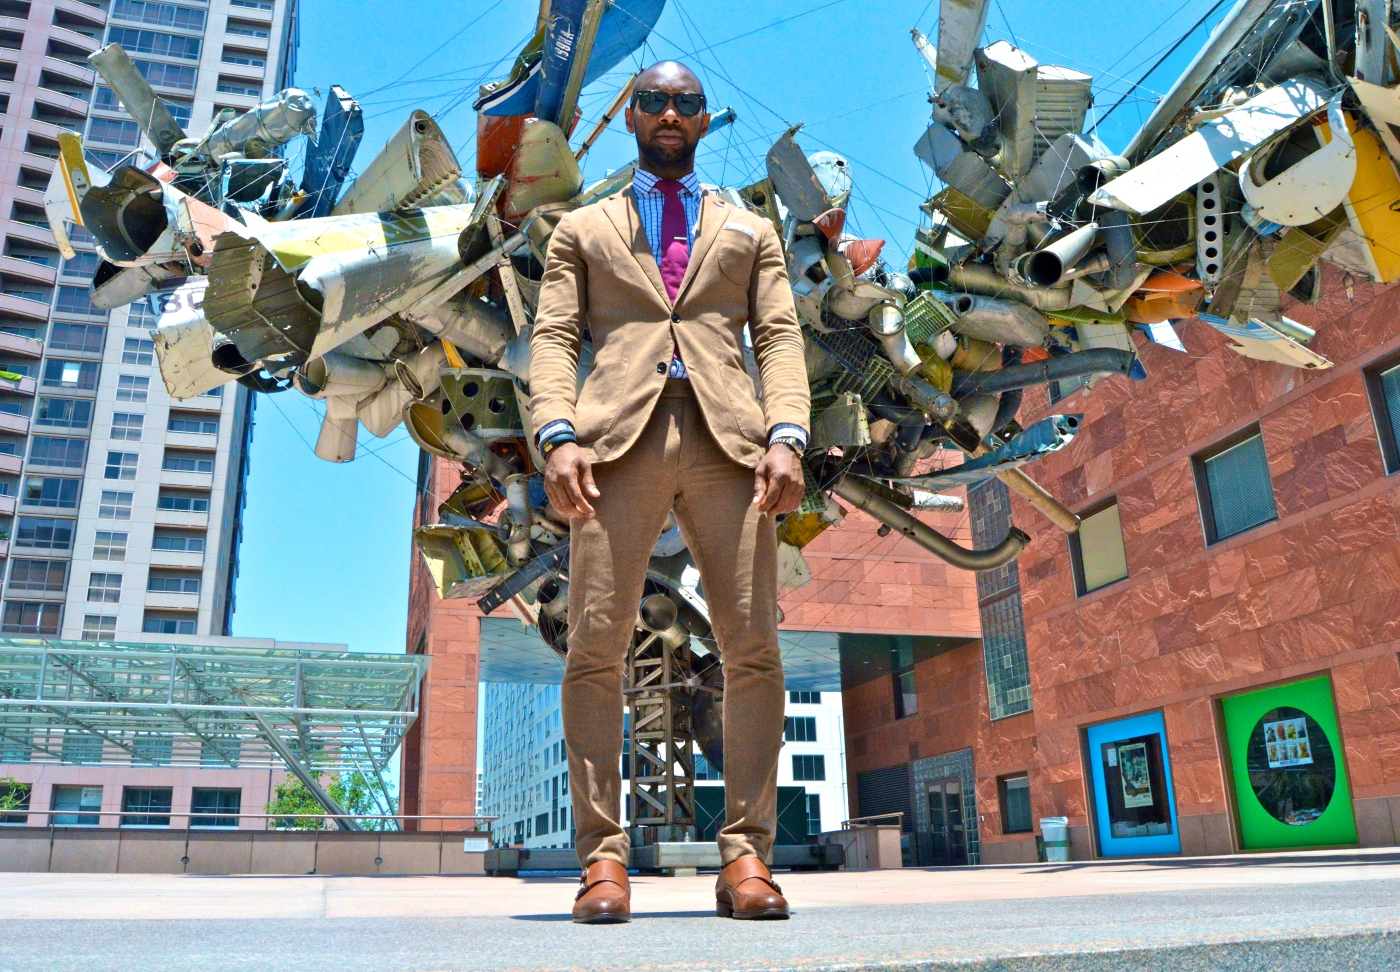 Suit- Club Monaco Shirt- Spread Collar- J-Crew Tie- Paul Smith Tie Bar- The Tie Bar Pocket Square- Polka Dot By J-Crew Shoes- Double Monk Strap- Hugo Boss Glasses- Rayban Wayfarer Nancy Rubin's Chas' Stainless Steel, Mark Thompson's Airplane Parts, About 1000 Pounds of Stainless Steel Wire. (2001)